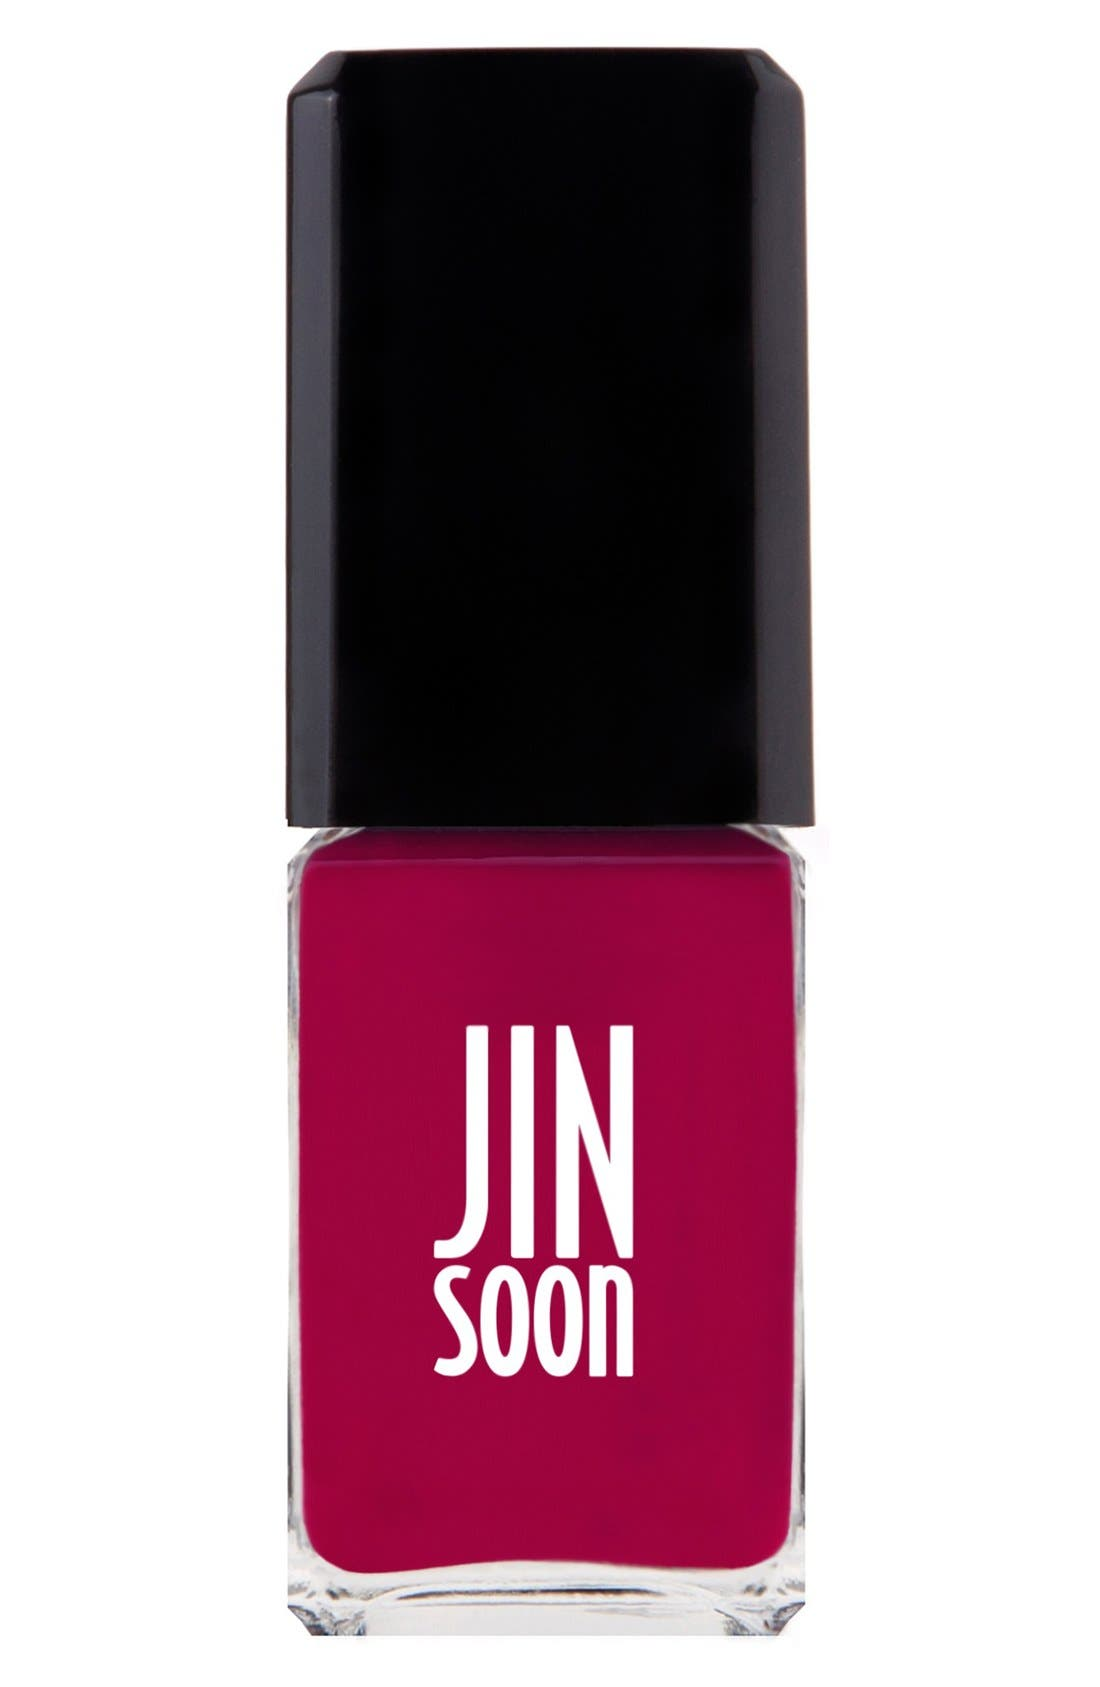 JINsoon 'Cherry Berry' Nail Lacquer